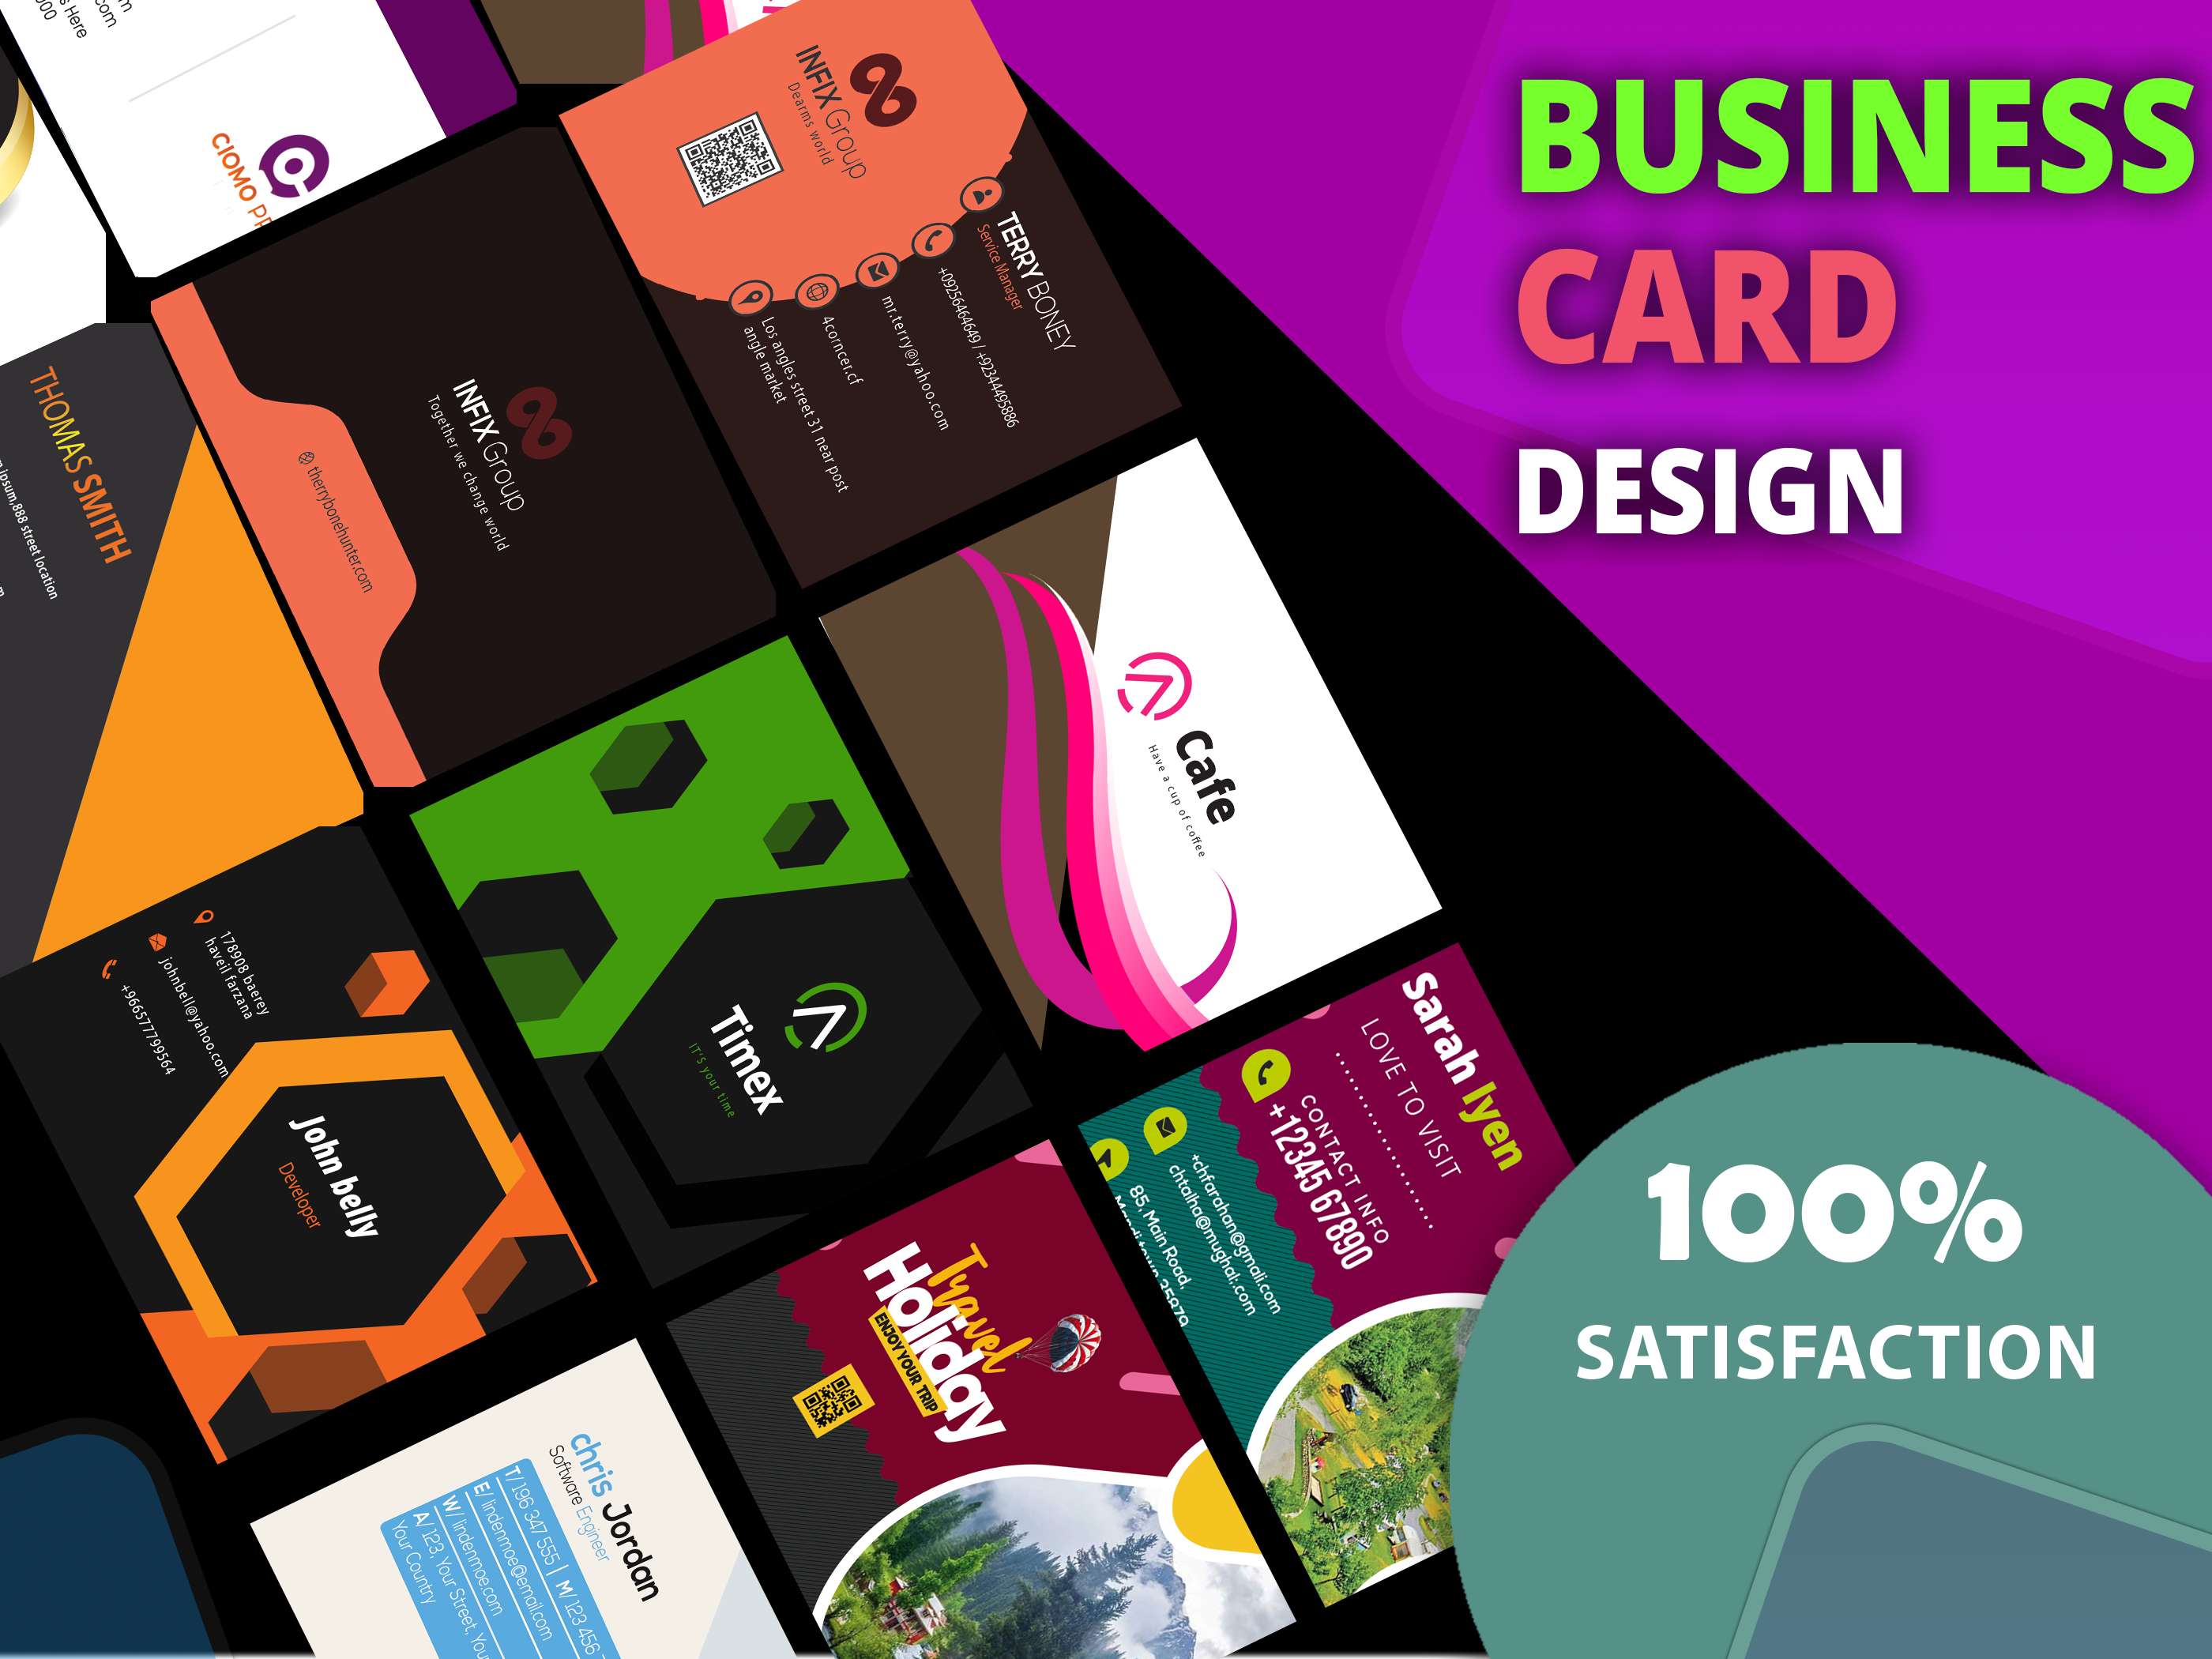 I will design an luxury creative and modern business card